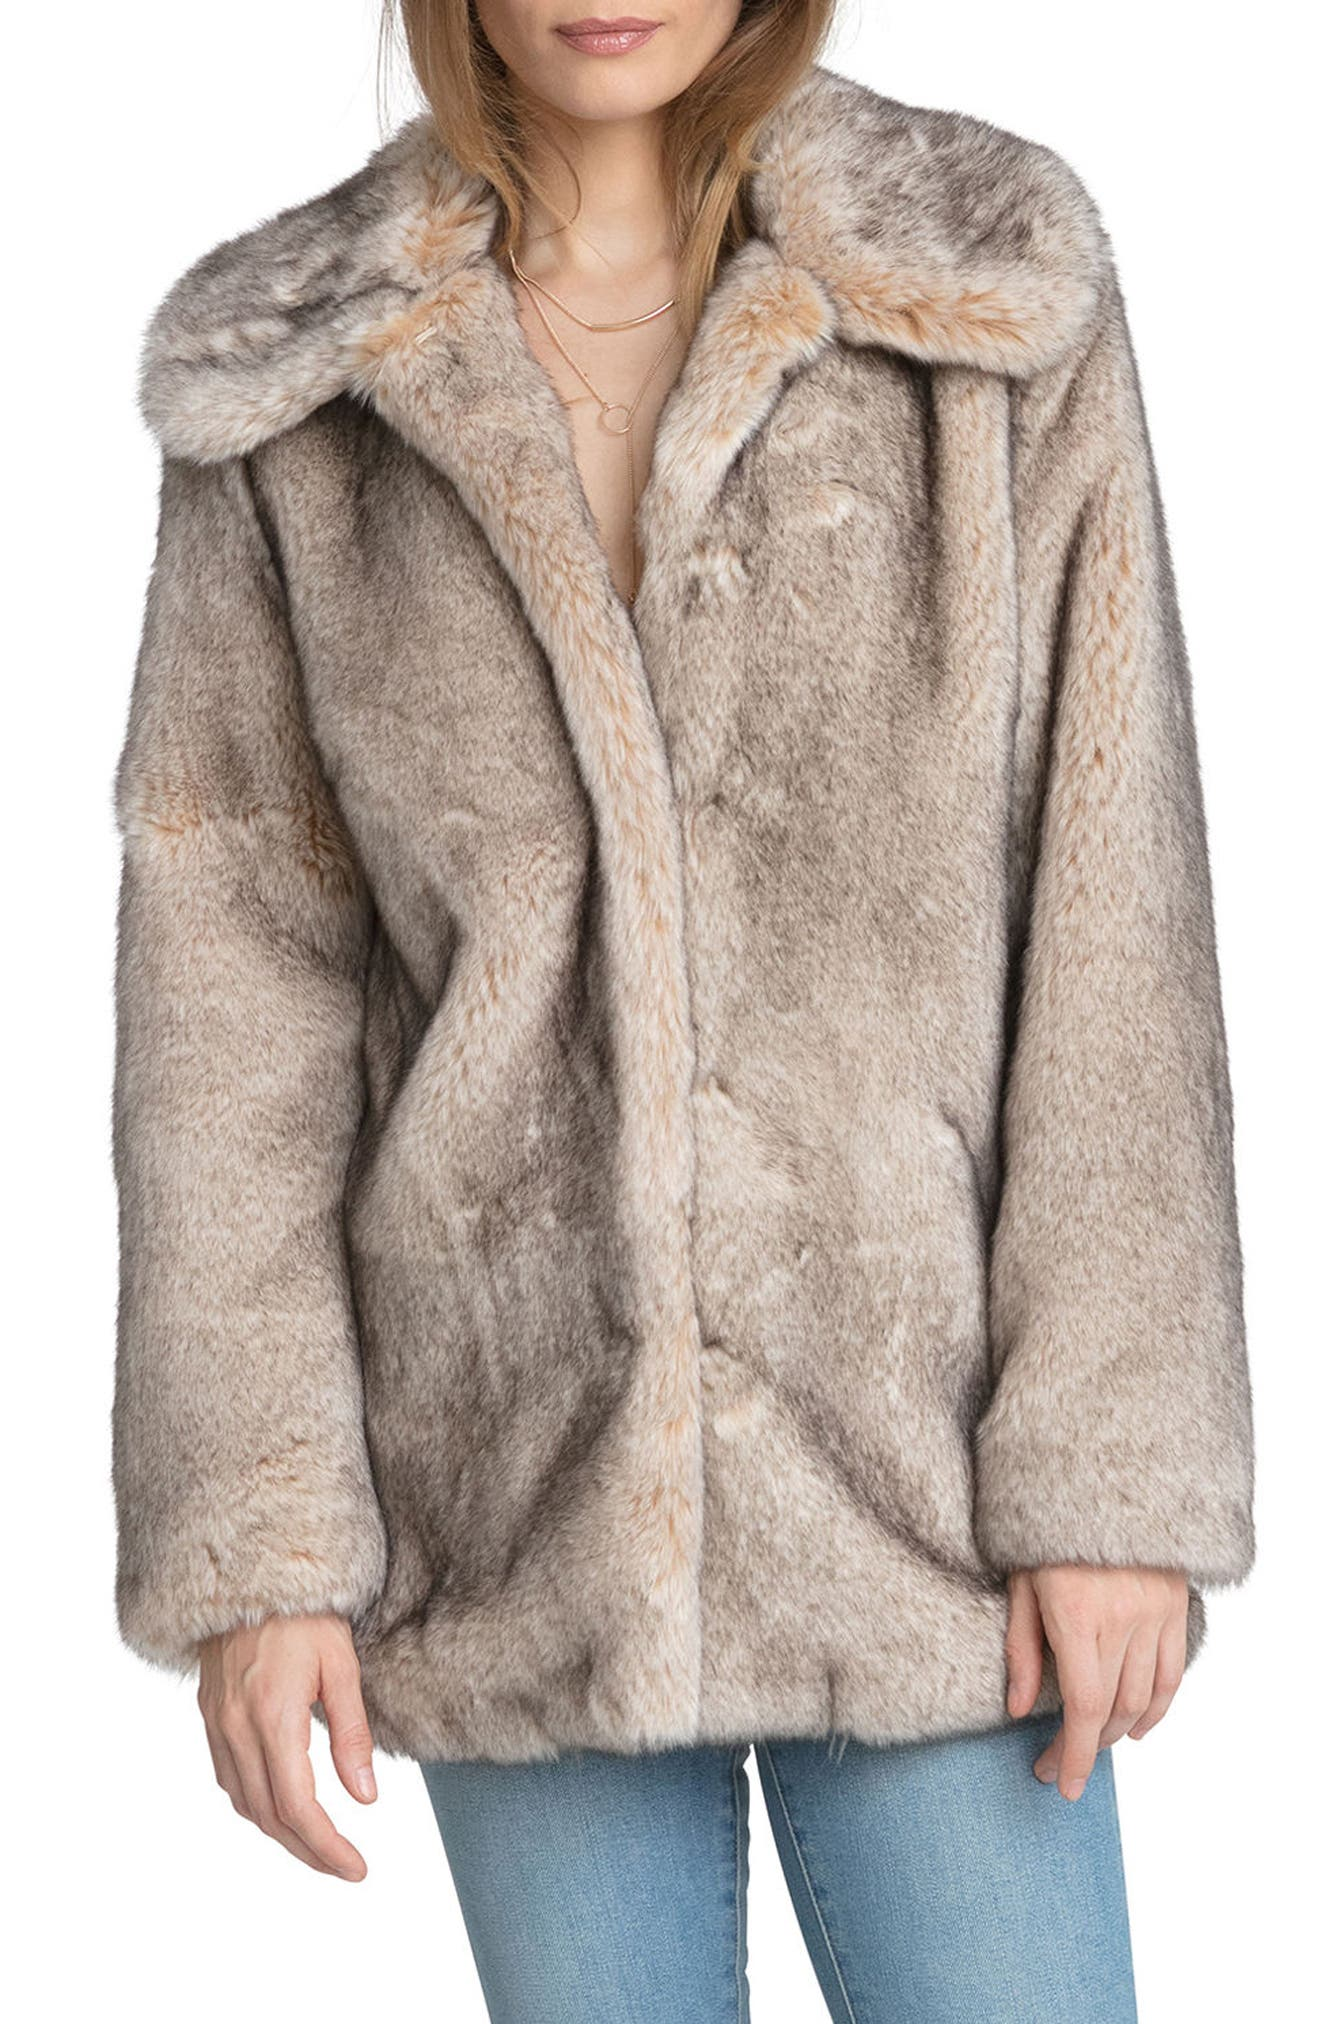 Faux Fur Swing Coat,                             Main thumbnail 1, color,                             257